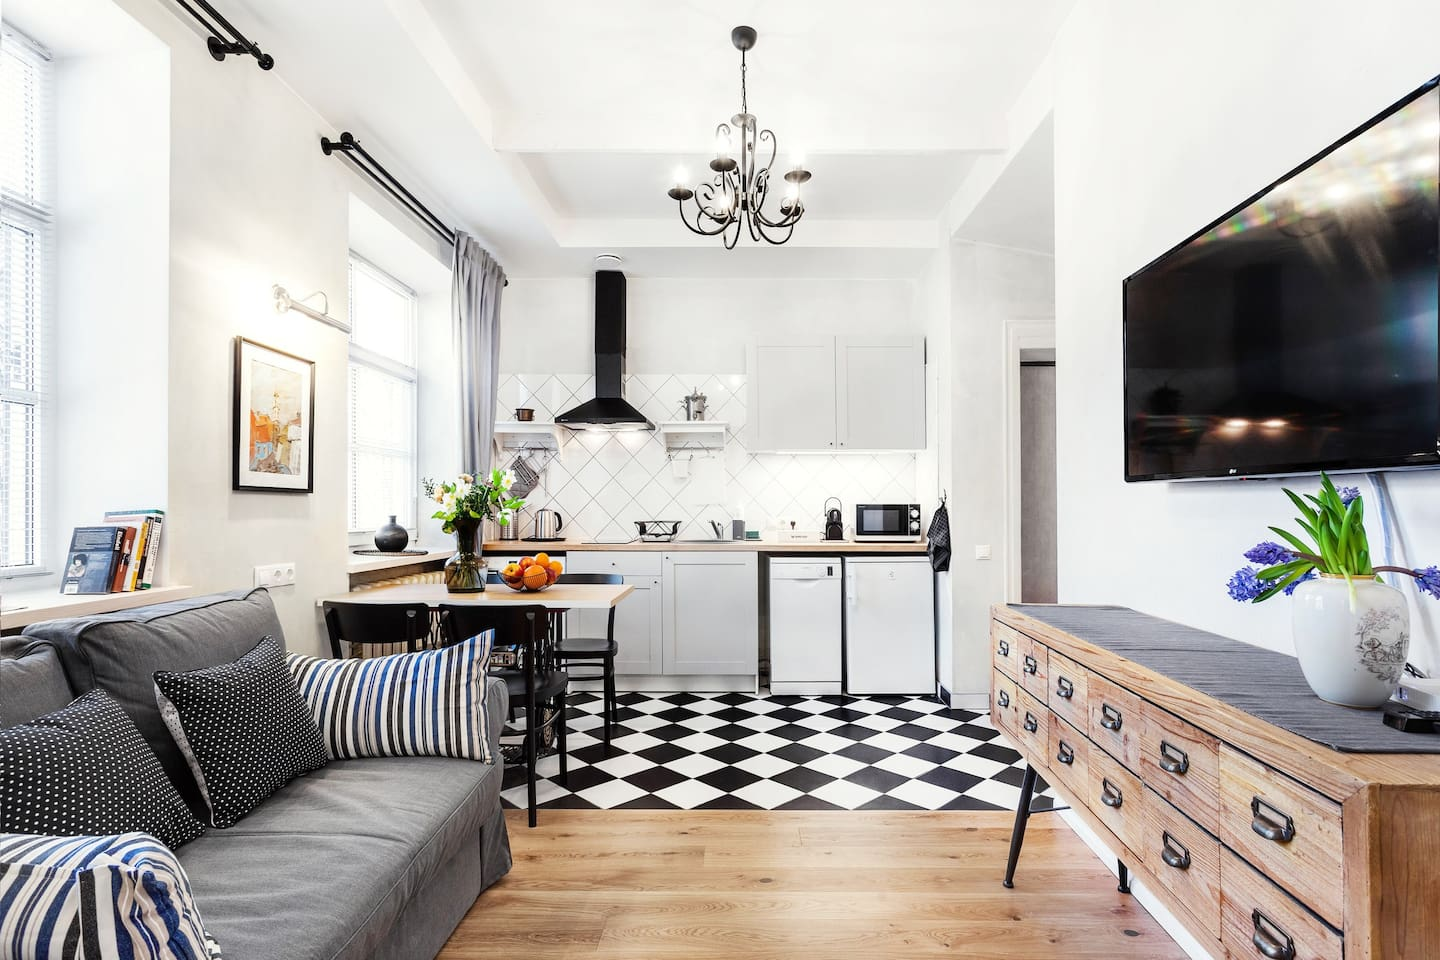 Spacious living room and kitchen reflecting Old Town atmosphere